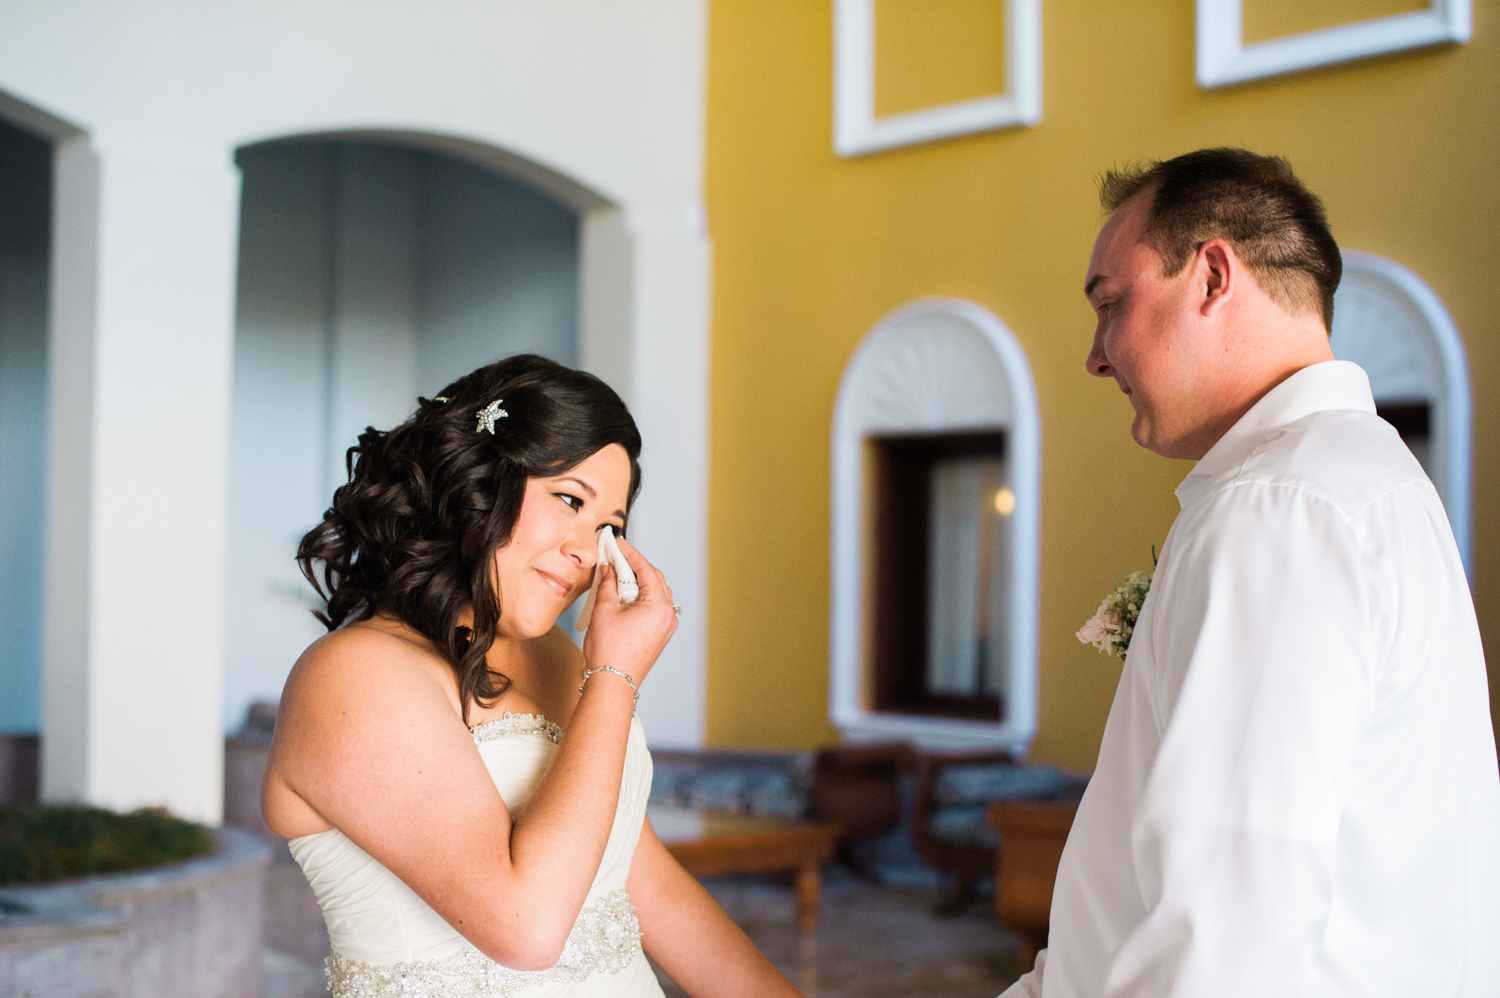 JadeandRyan-Montego-Bay-Jamaica-Wedding-Iberostar-Resort-Beach-31.jpg